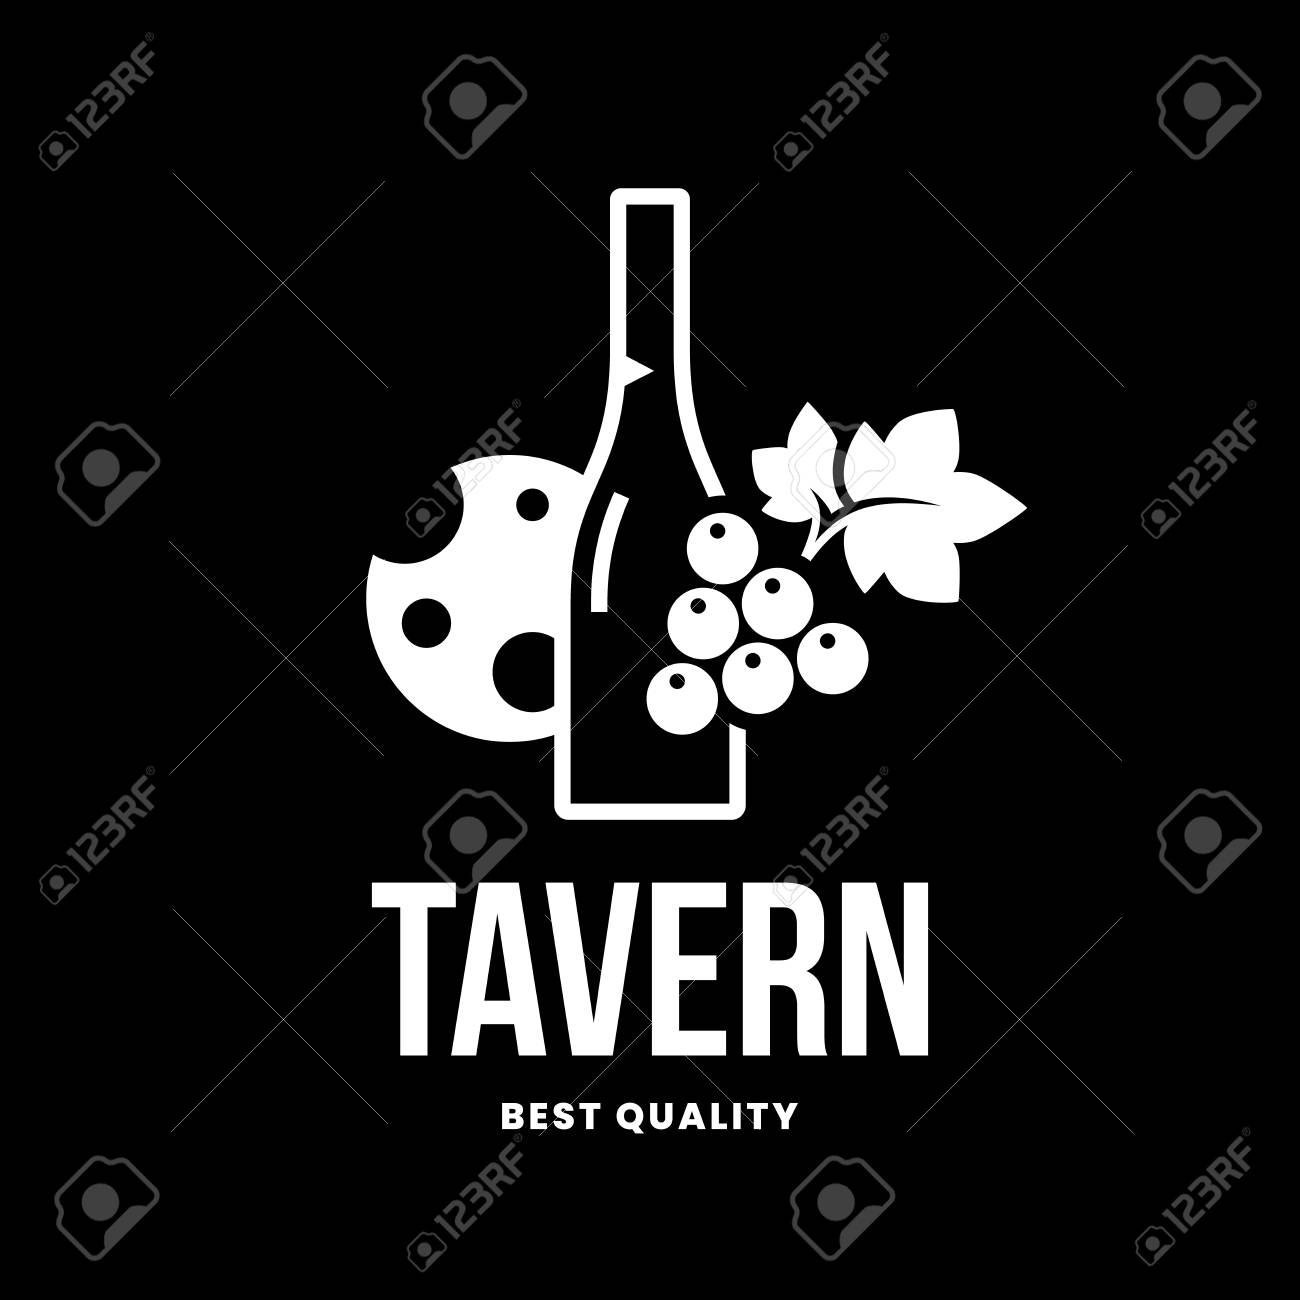 Modern wine vector logo sign for tavern, restaurant, house, shop, store, club and cellar isolated on black background. Premium quality vinery logotype illustration. Fashion brand badge design template. - 126498929